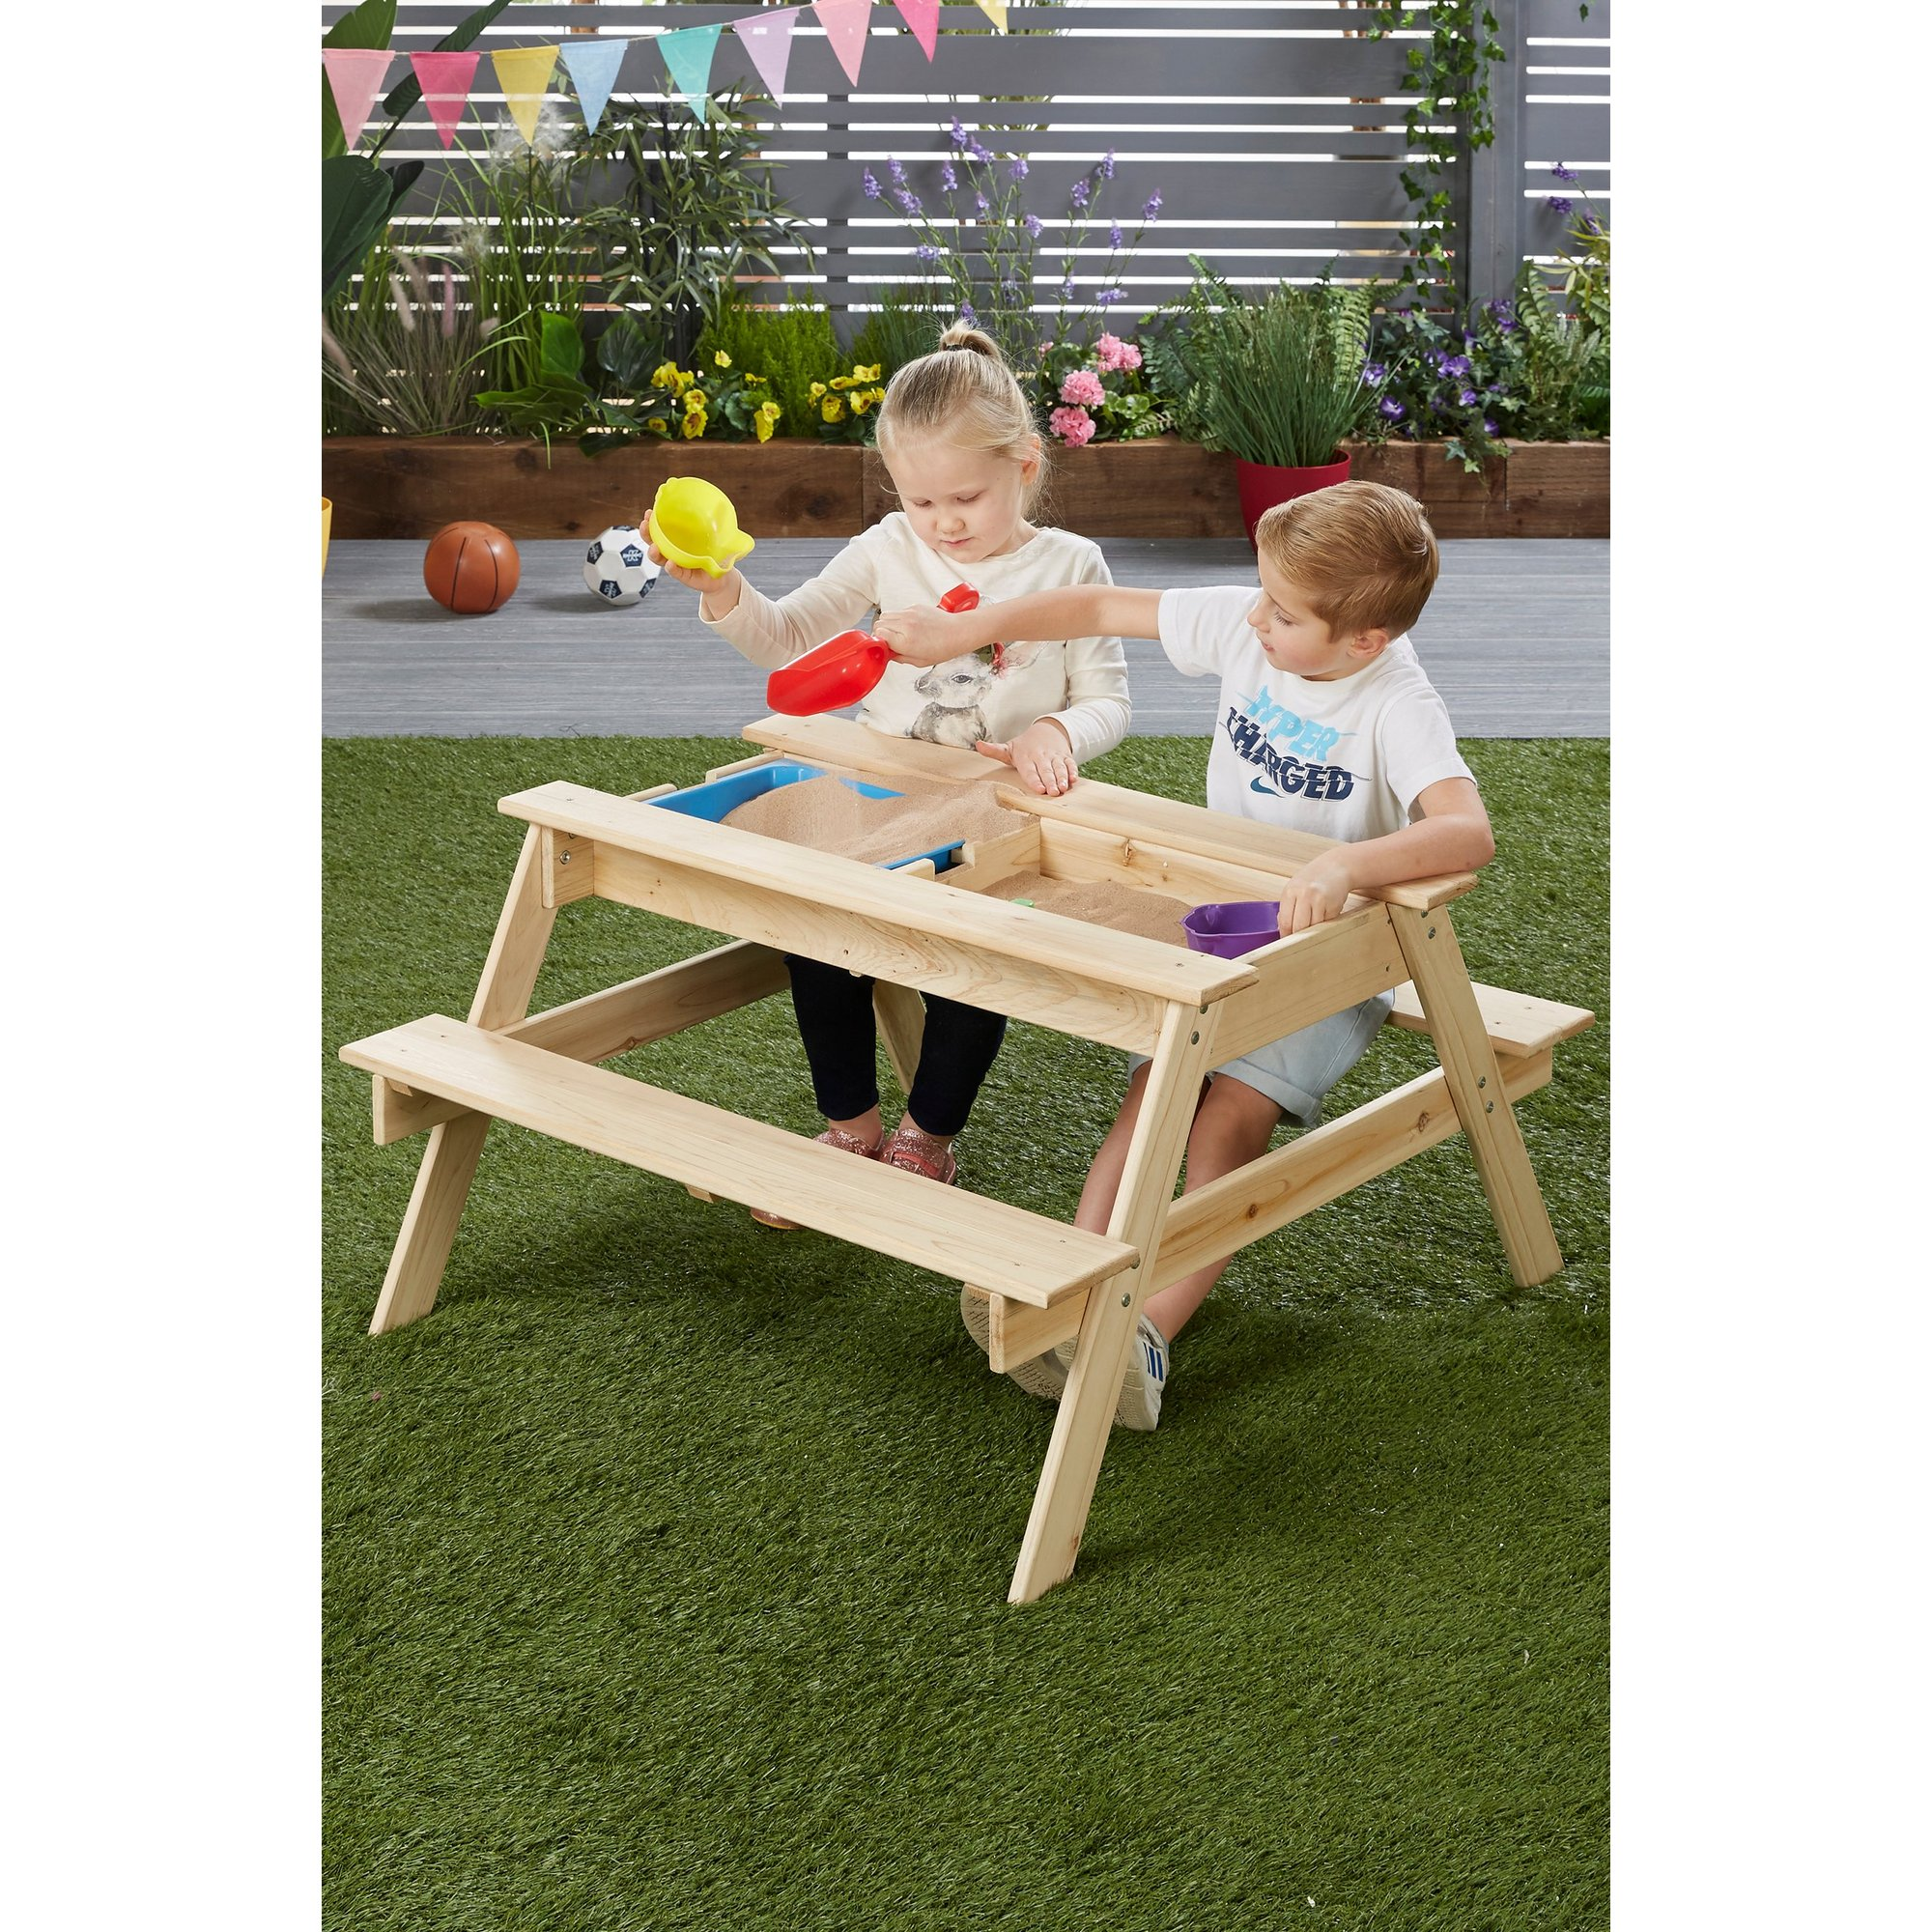 Image of 3-In-1 Wooden Picnic Table